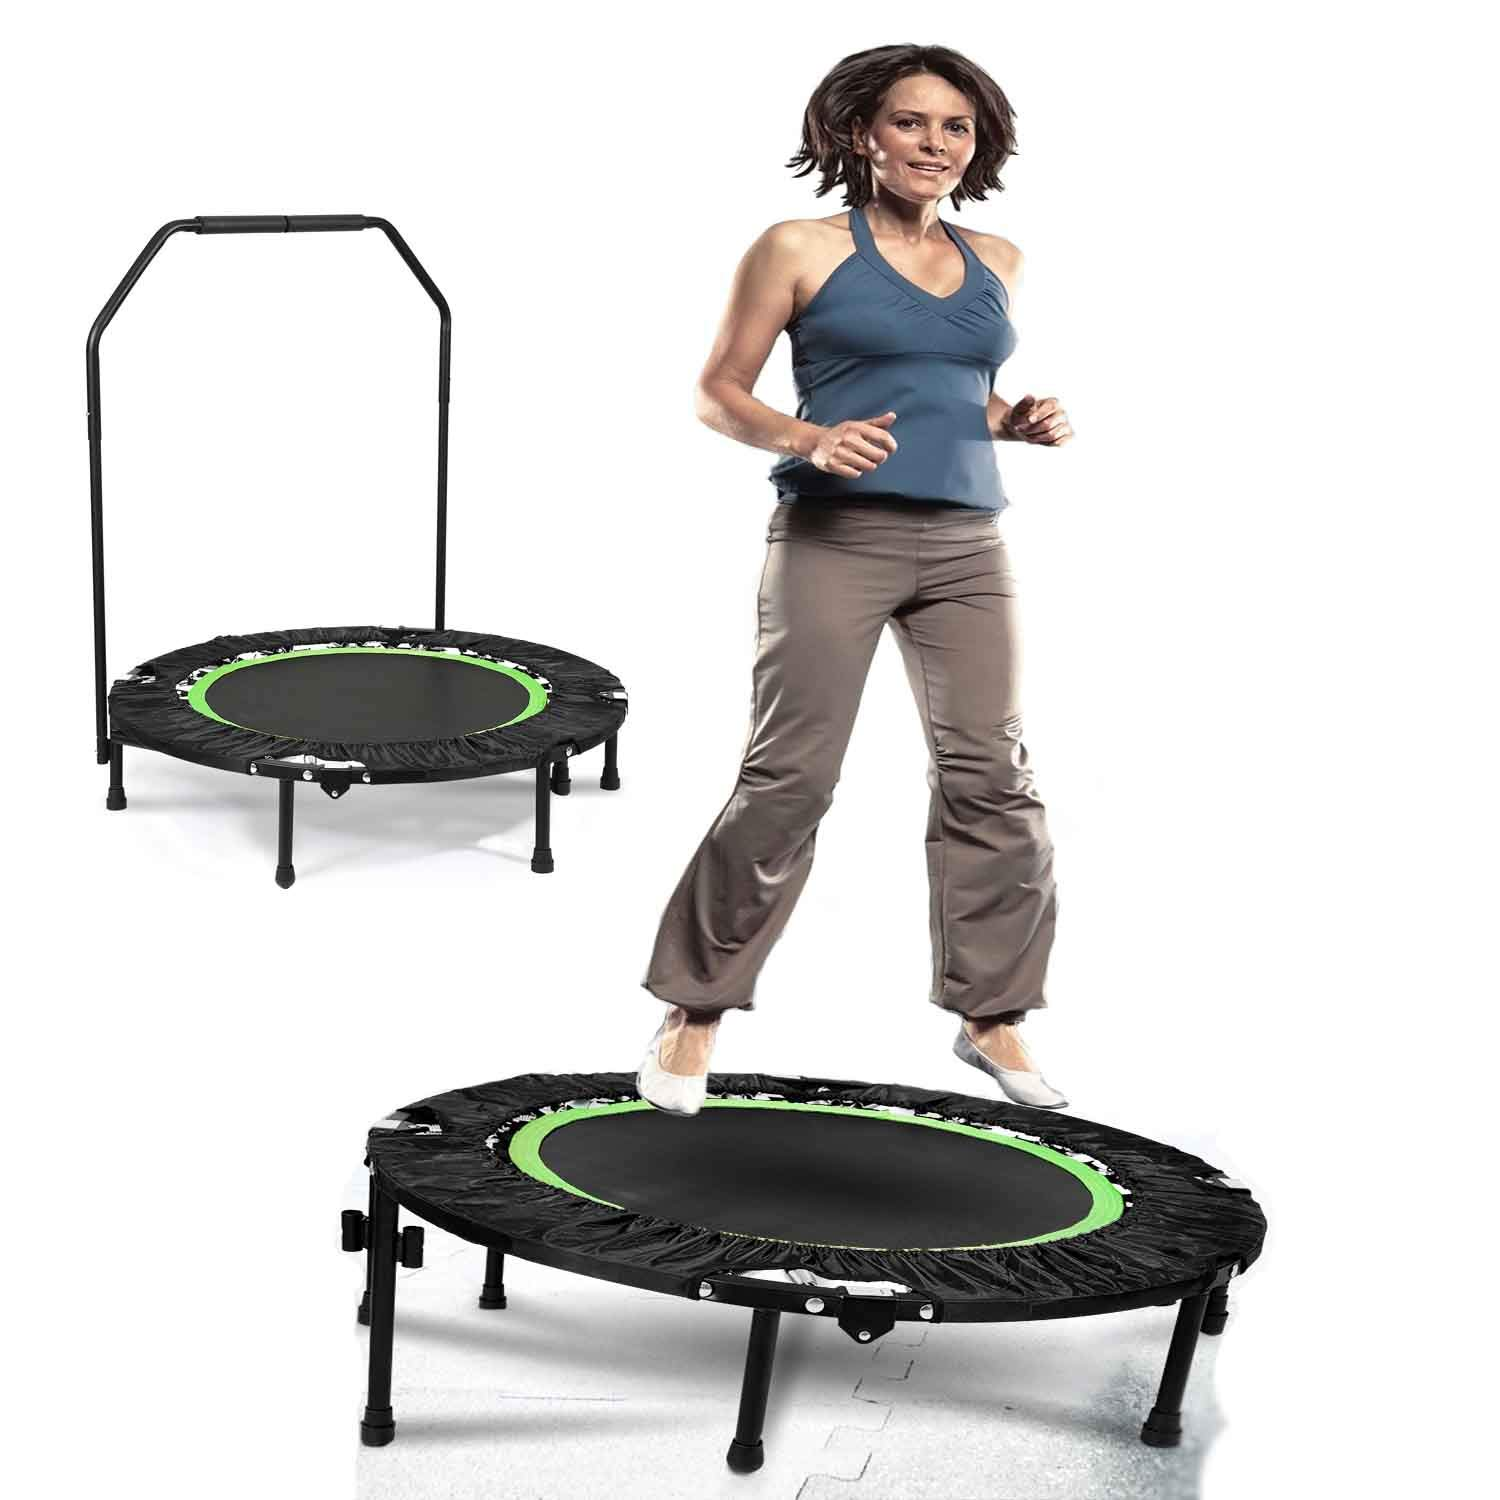 shaofu Mini Adult Trampoline Indoor Gymnastic Exercise Rebounder Trampolines 300 lbs with Handle (Green - Adjustable Legs) by shaofu